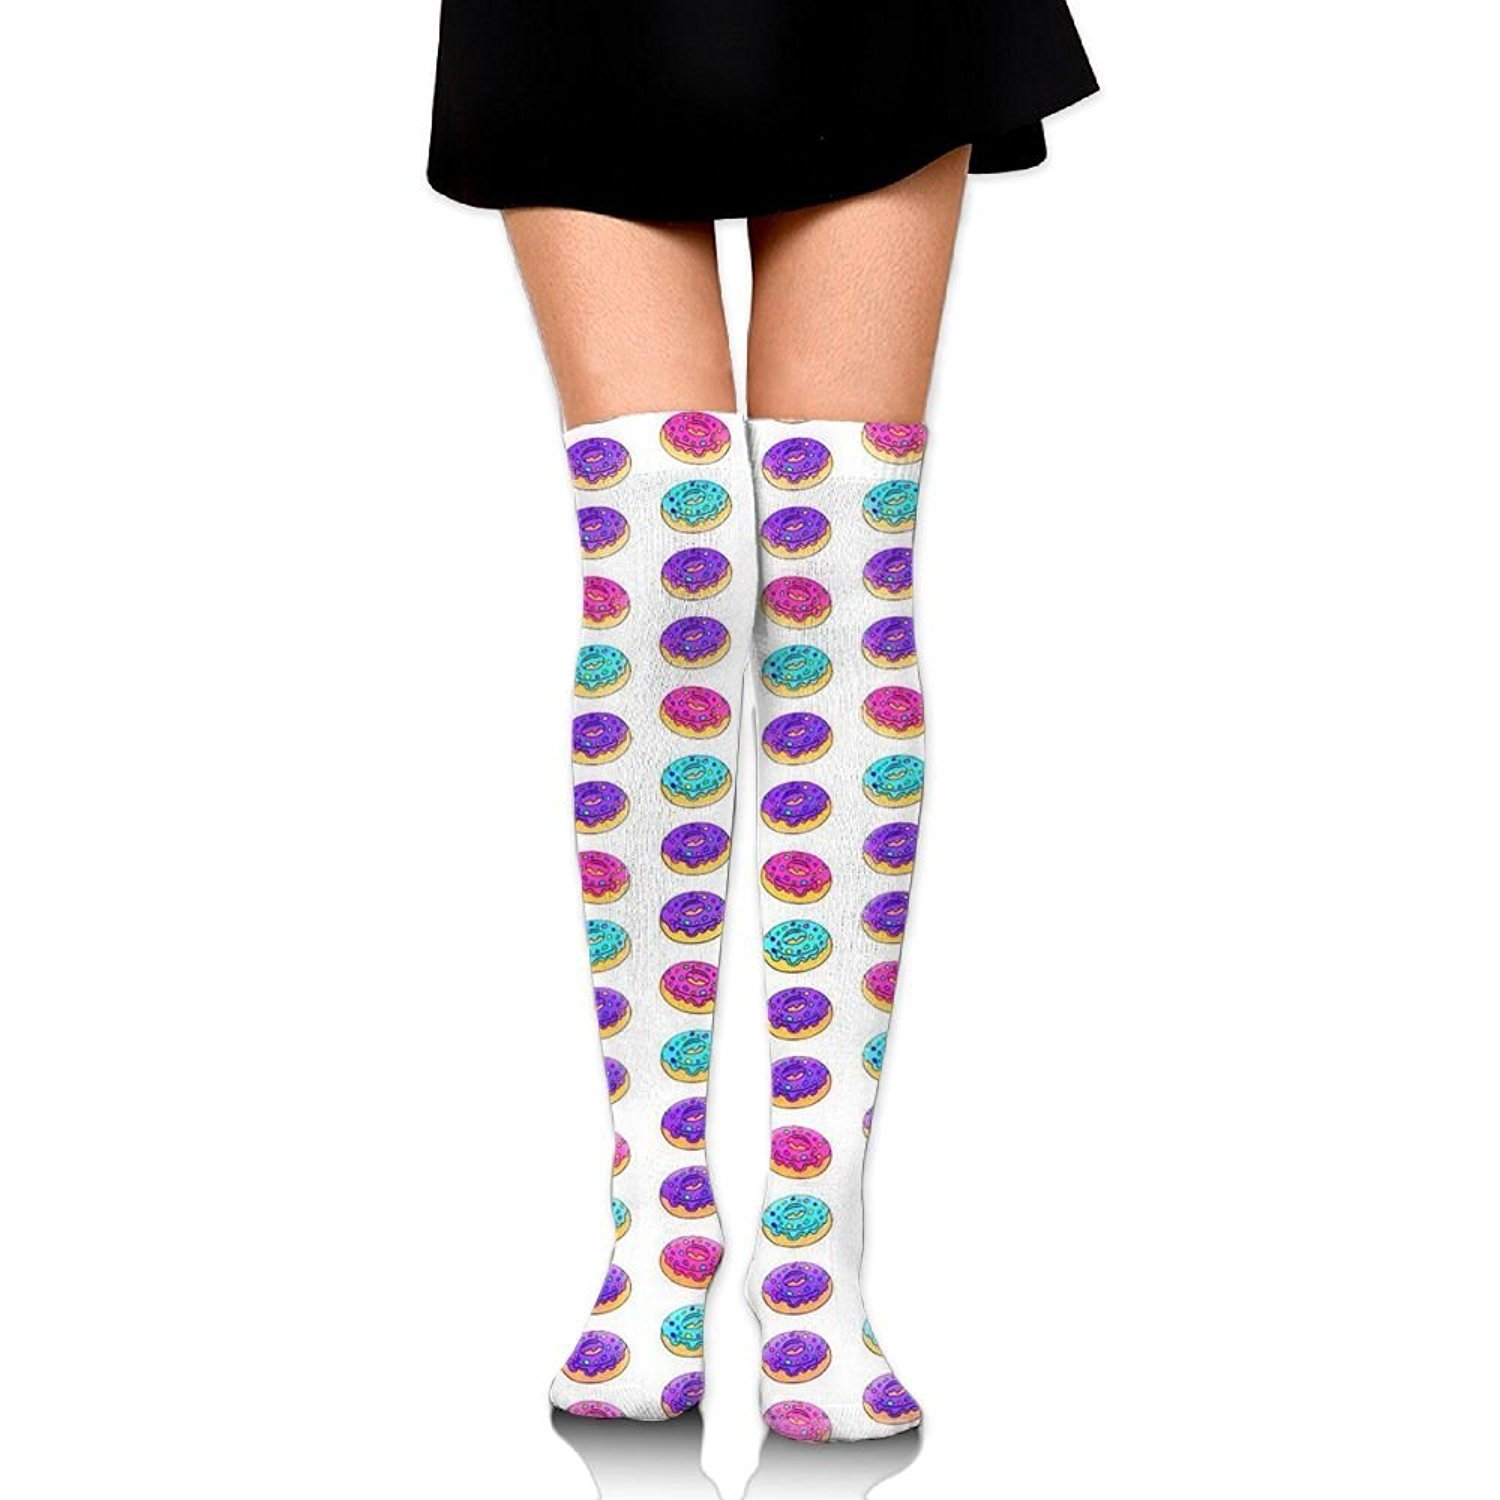 Zaqxsw Doughnut Food Women Vintage Thigh High Socks Thermal Socks For Ladies